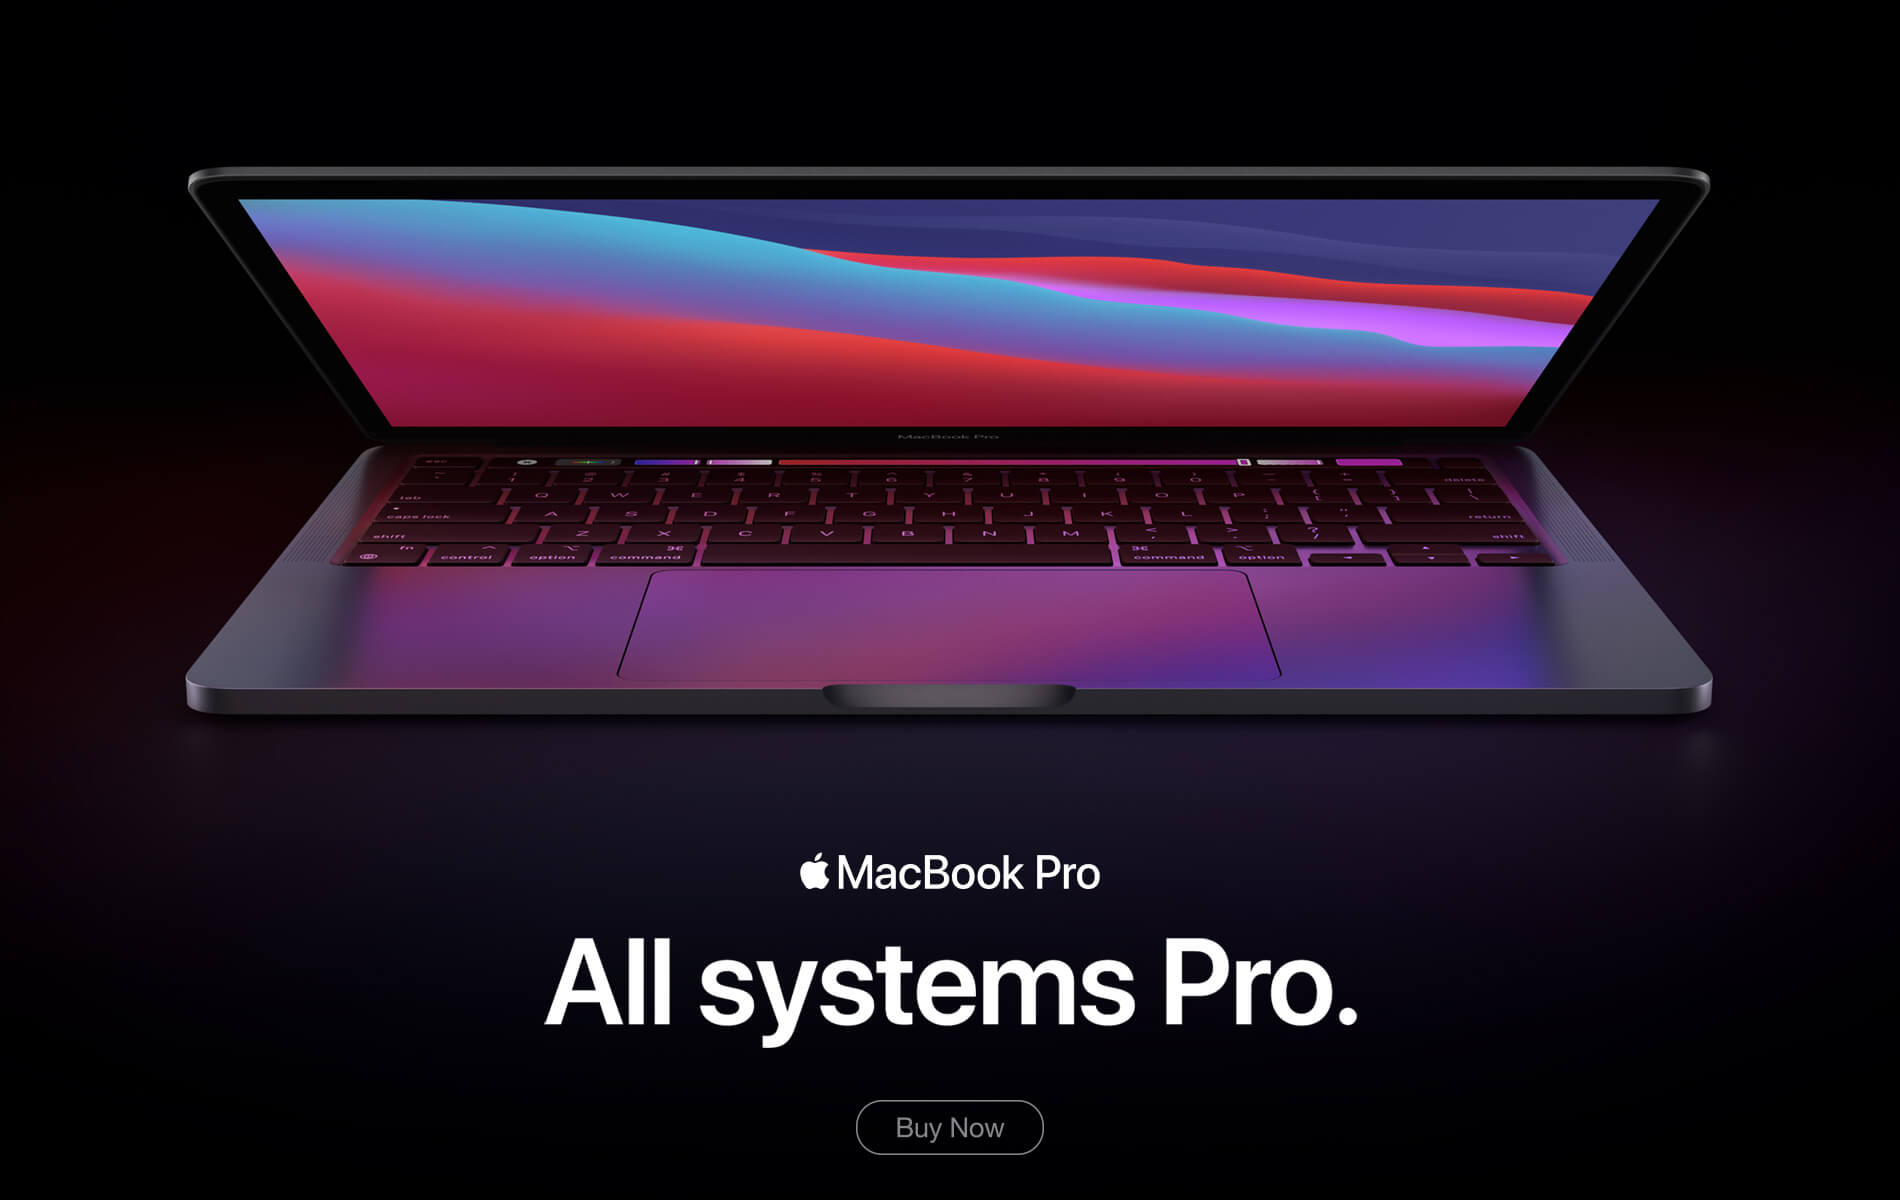 MacBook Pro. All systems Pro